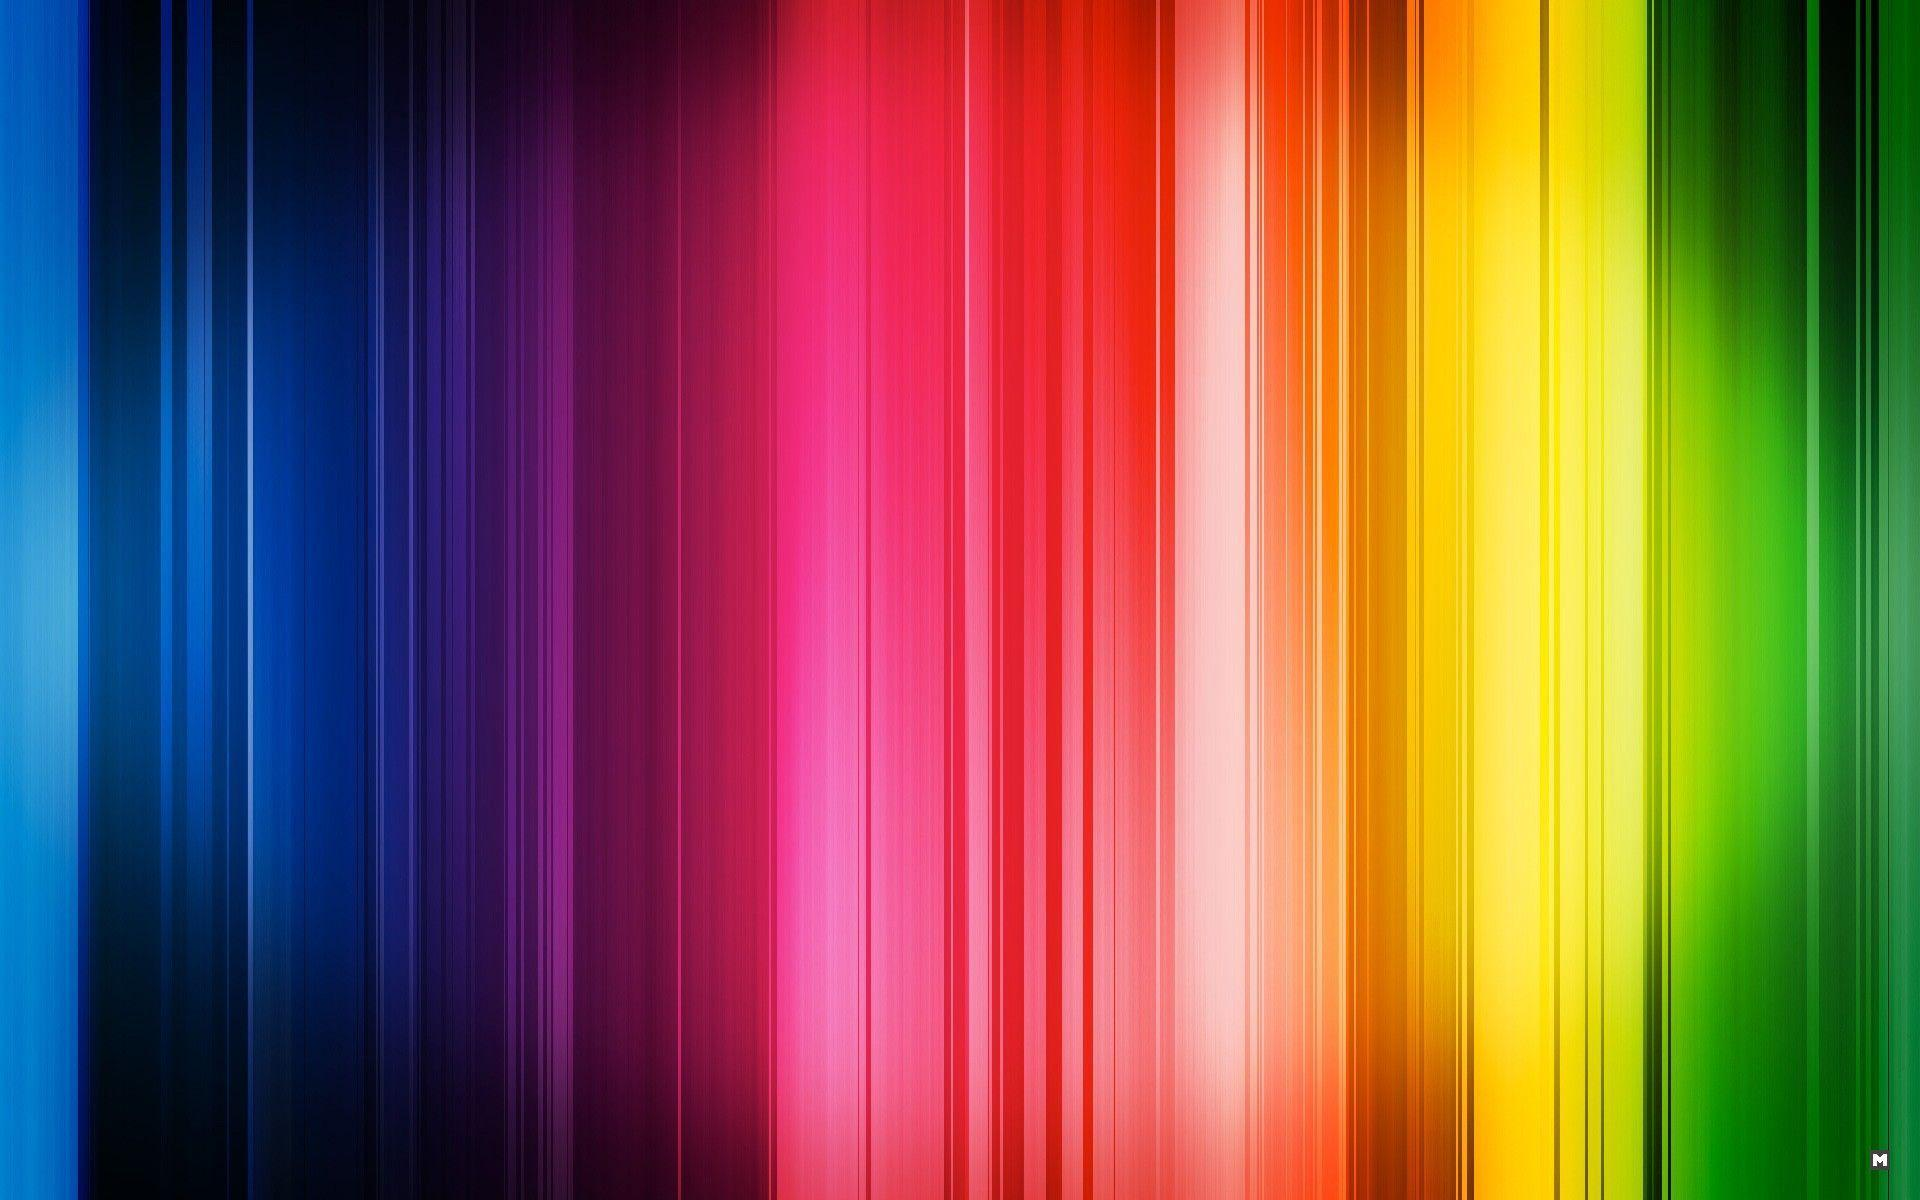 Wallpapers Hd Abstract Color Hd Backgrounds 8 Hd Wallpapers - Rainbow Background Hd - HD Wallpaper